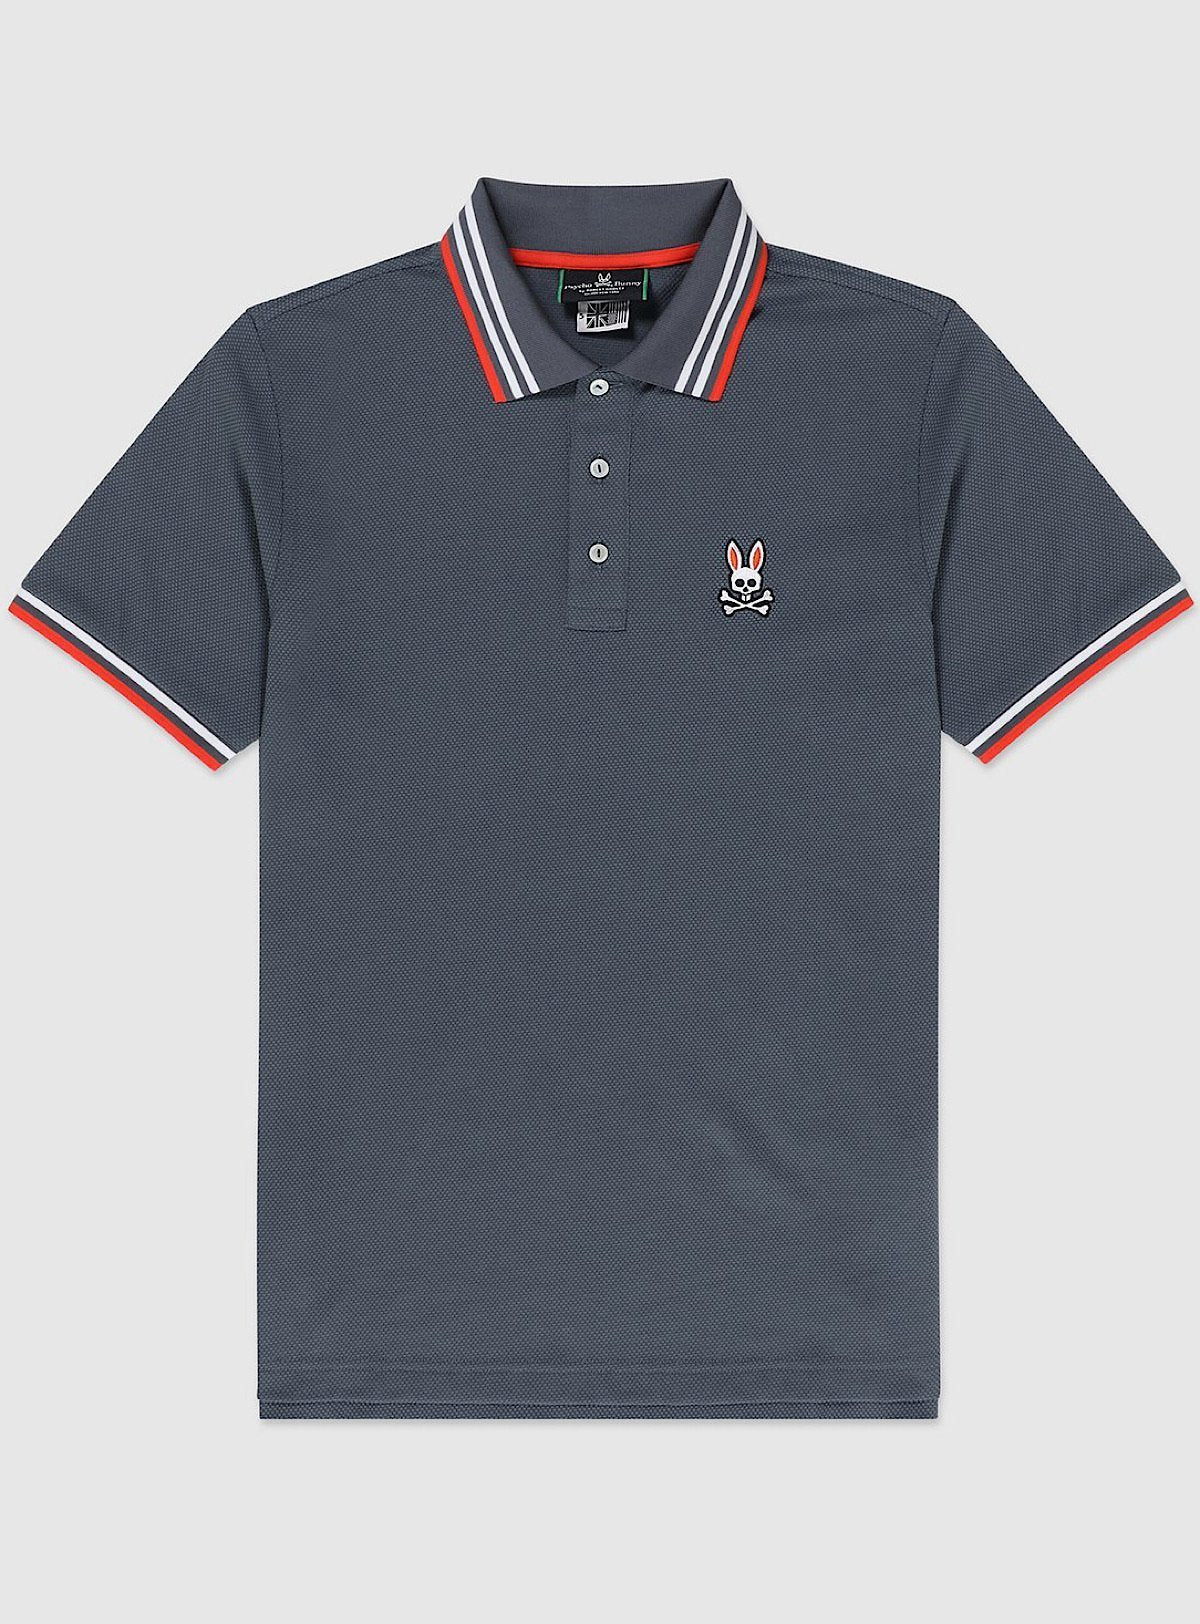 Psycho Bunny T-Shirt - Woburn Polo - Normandy Grey - B6K840J1PB